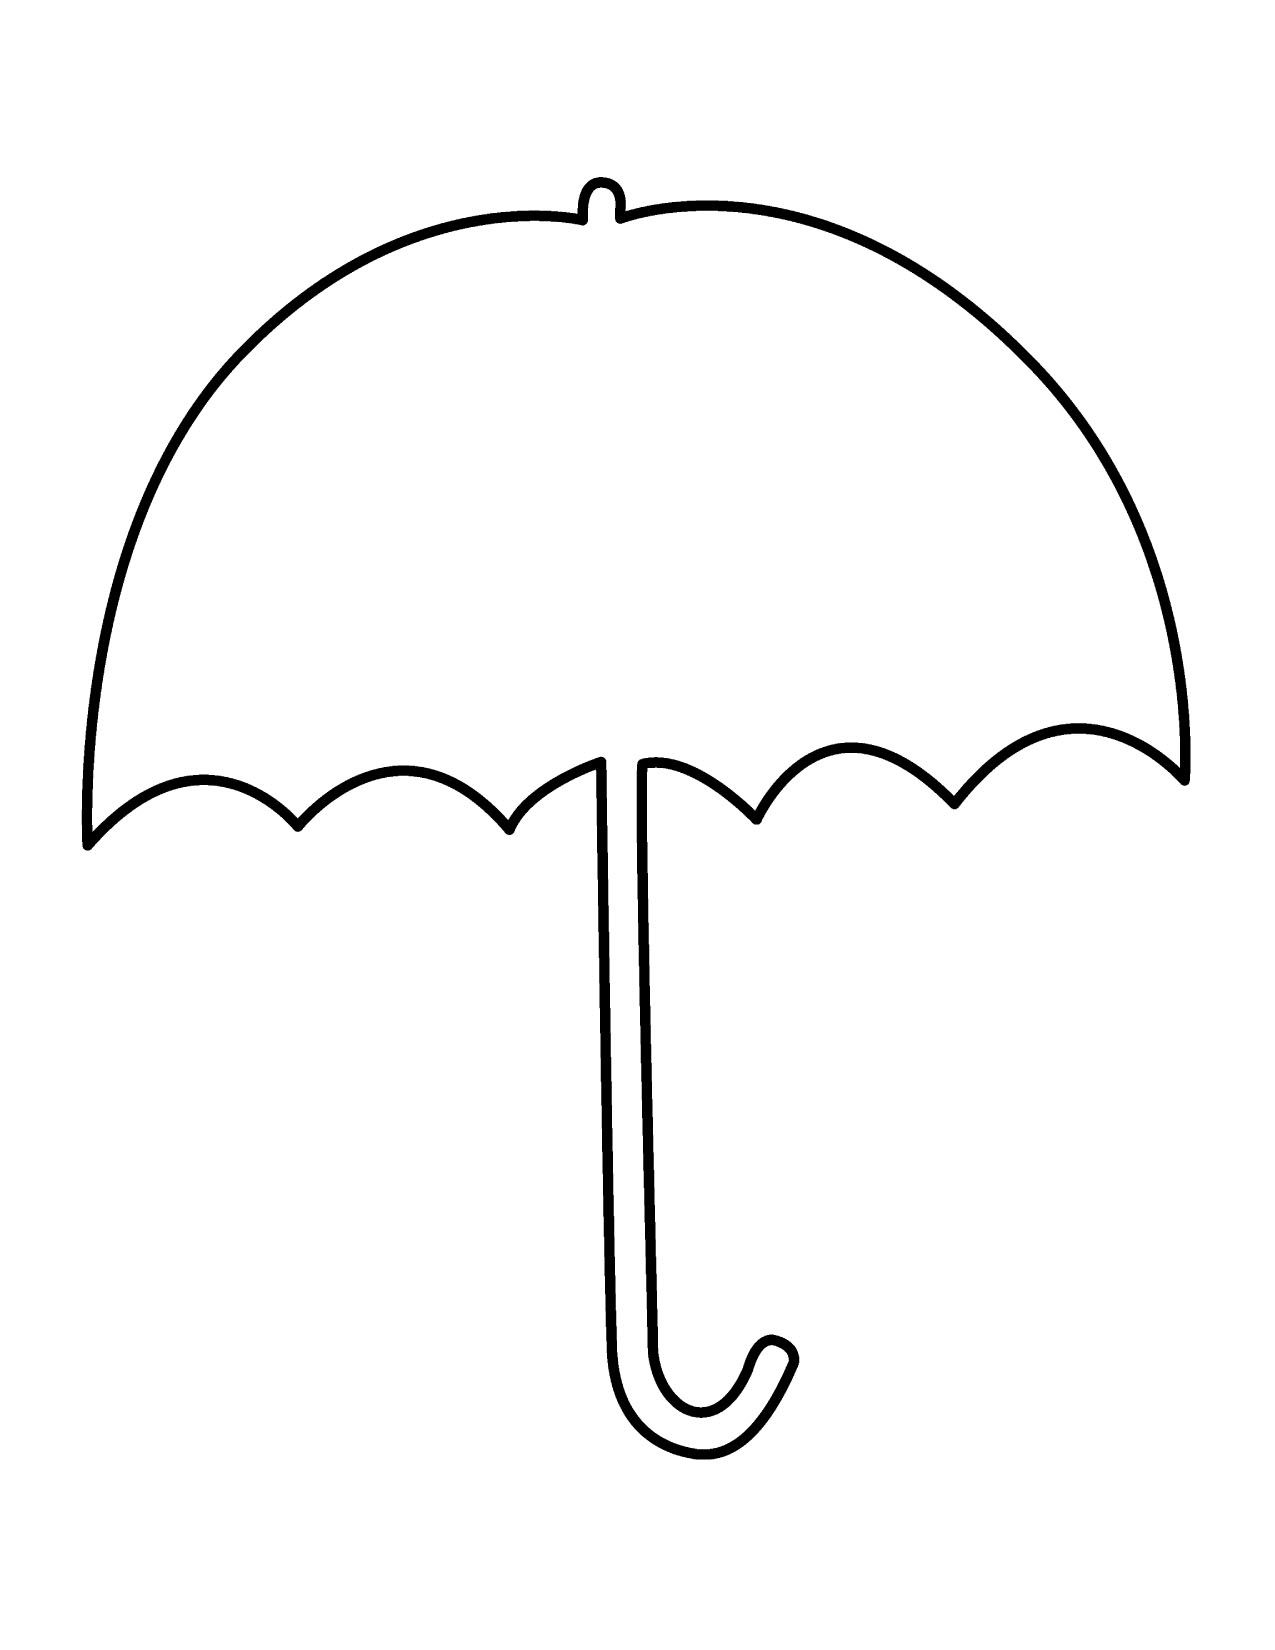 Umbrella Clip Art To Match Yellow If You Havent Read This Childrens Books Youre Missing Out Book 2 From 16 Spring And Free Materials